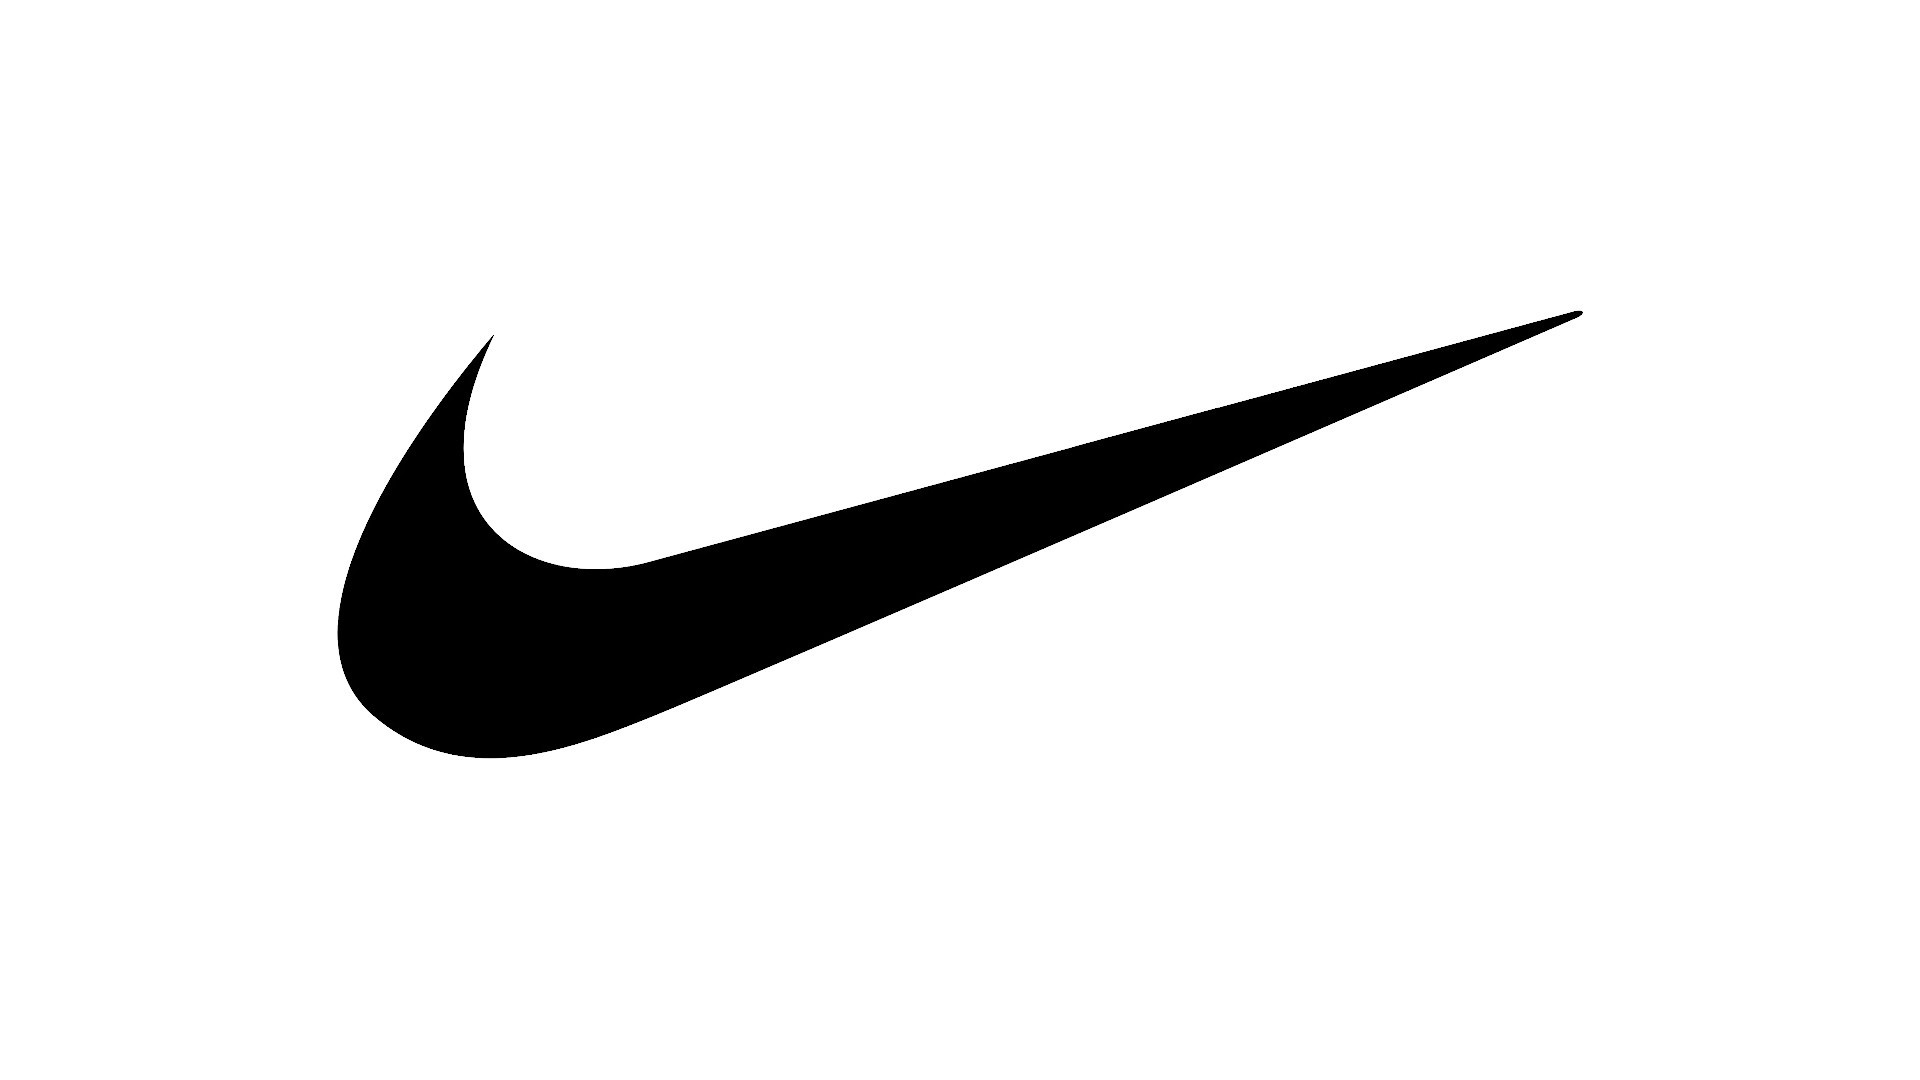 4420233 Cool Nike Wallpaper For Pc, Mobile.